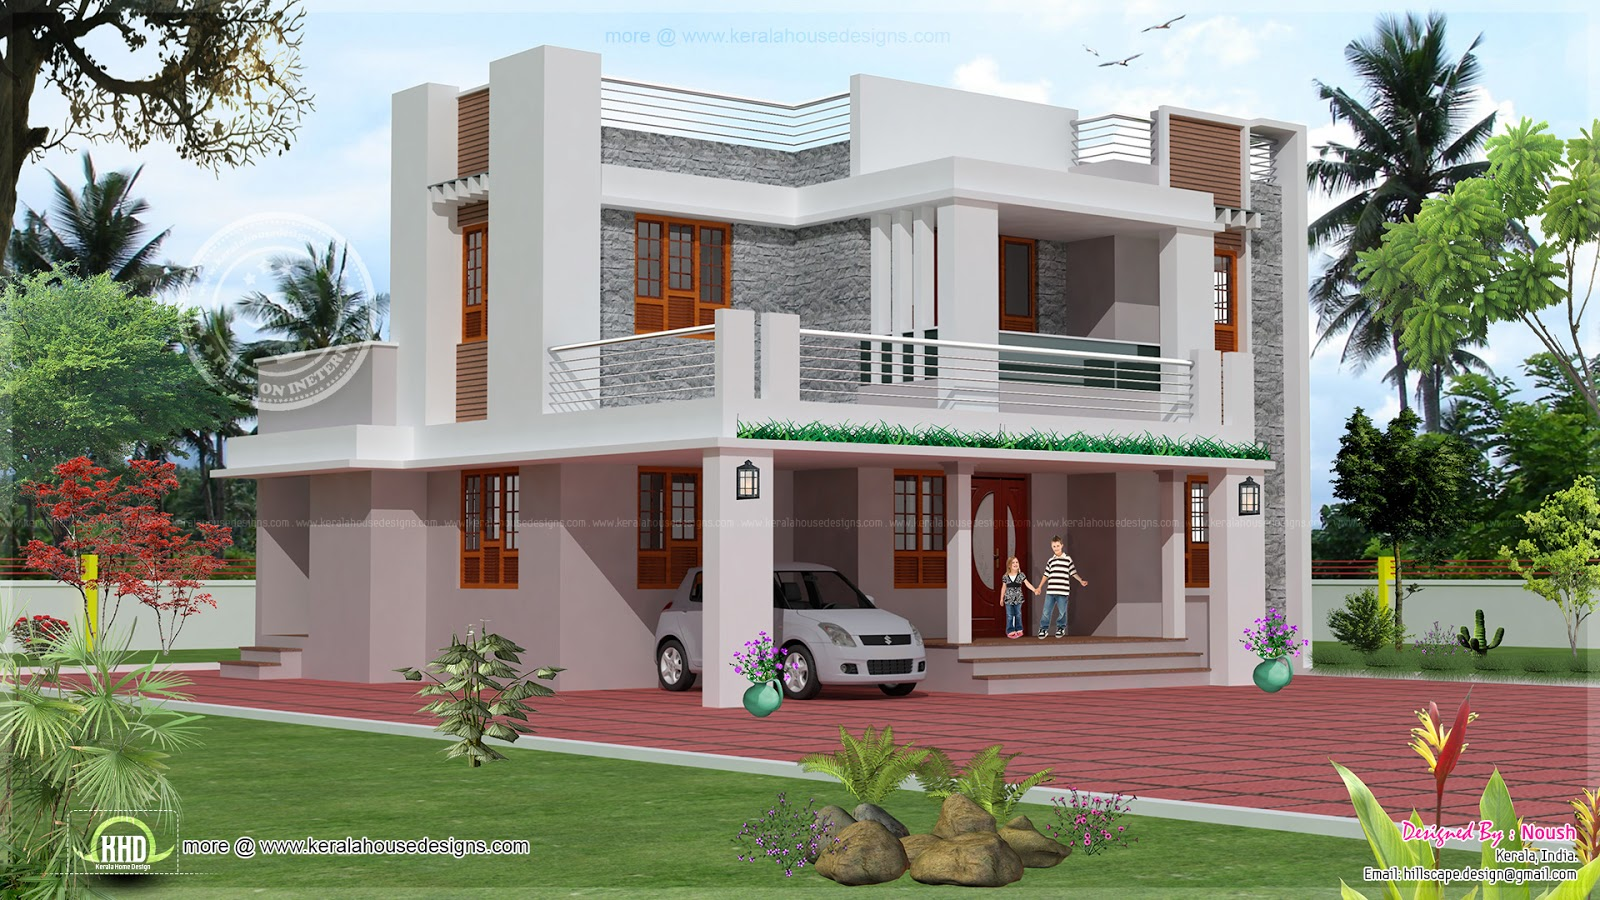 4 bedroom 2 story house exterior design house design plans for 4 story house